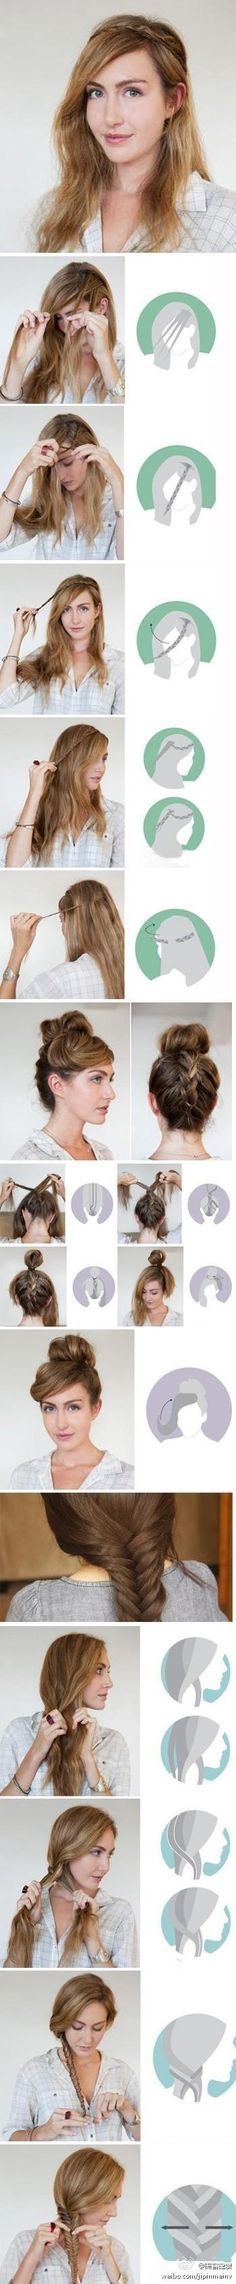 Braid how to..